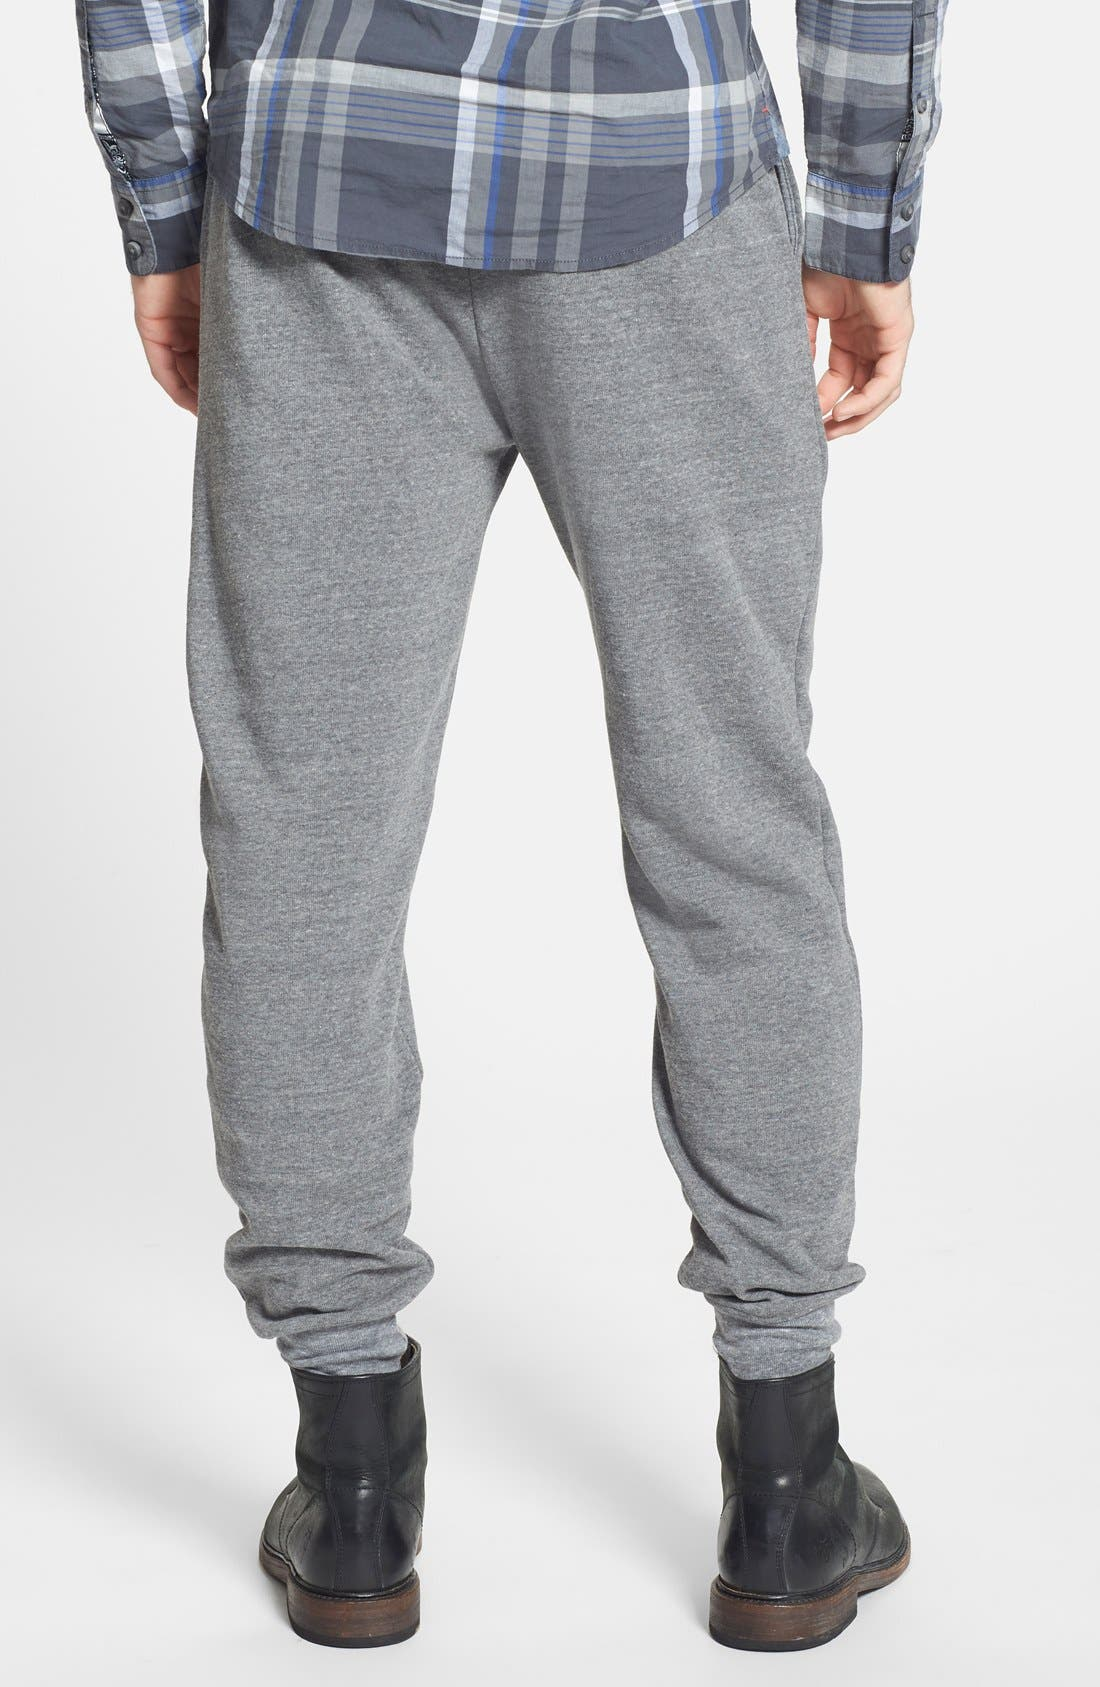 'Dodgeball' Eco Fleece Sweatpants,                             Alternate thumbnail 21, color,